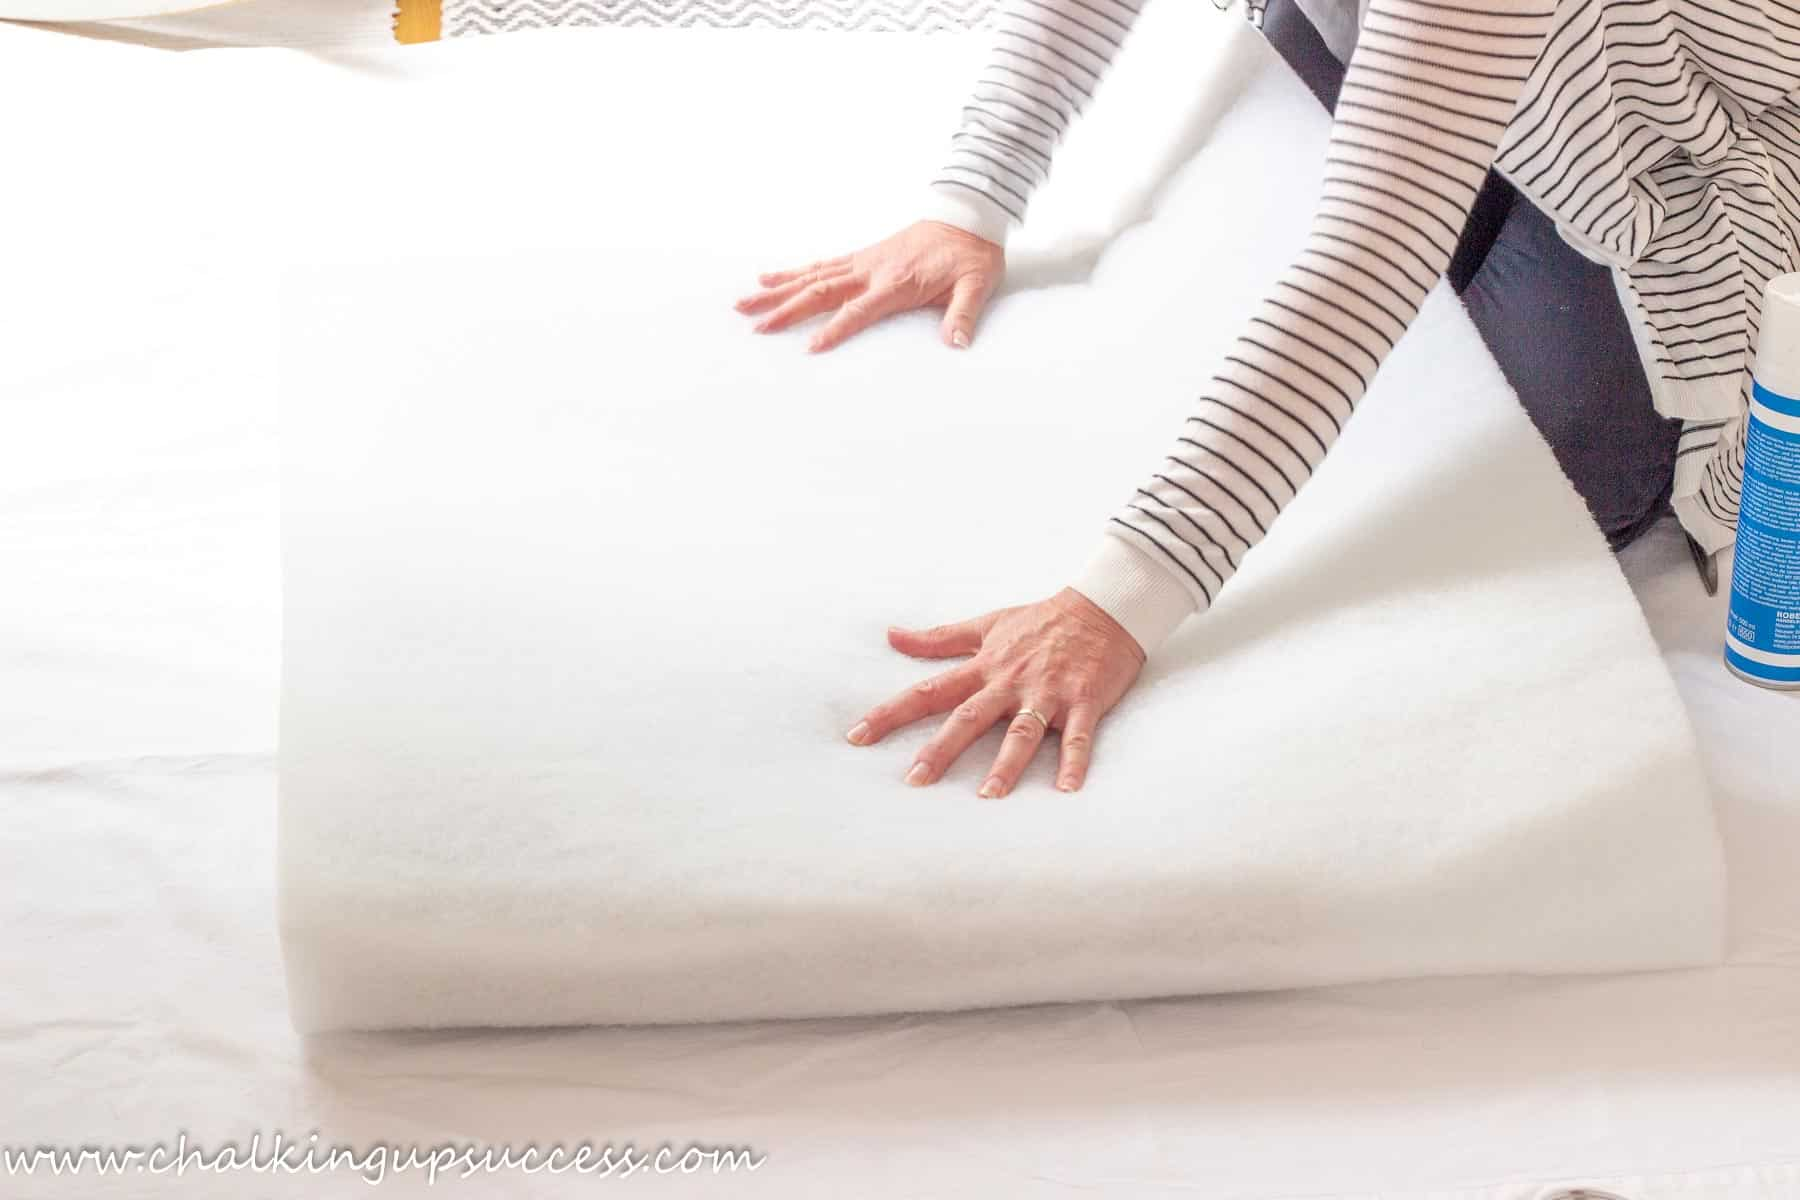 a person wrapping some foam batting around a high density foam cushion pad